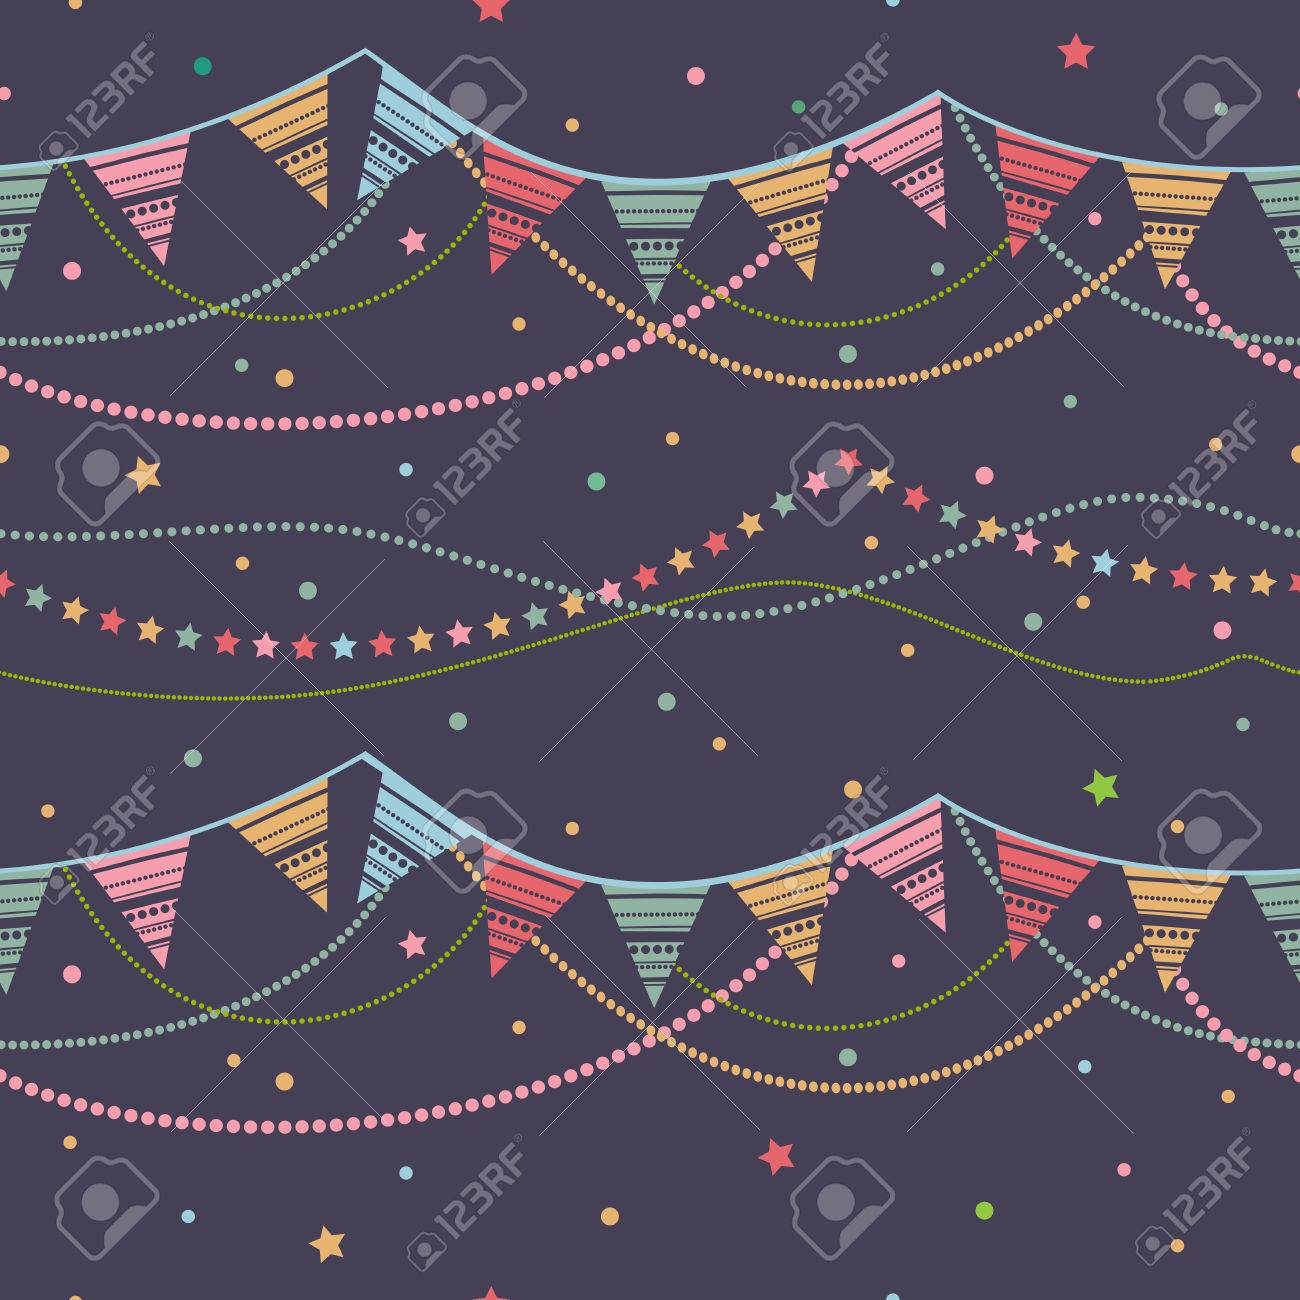 Party pennant bunting. Party seamless background. Vector seamless illustration with ribbons of festive flags. - 55533759